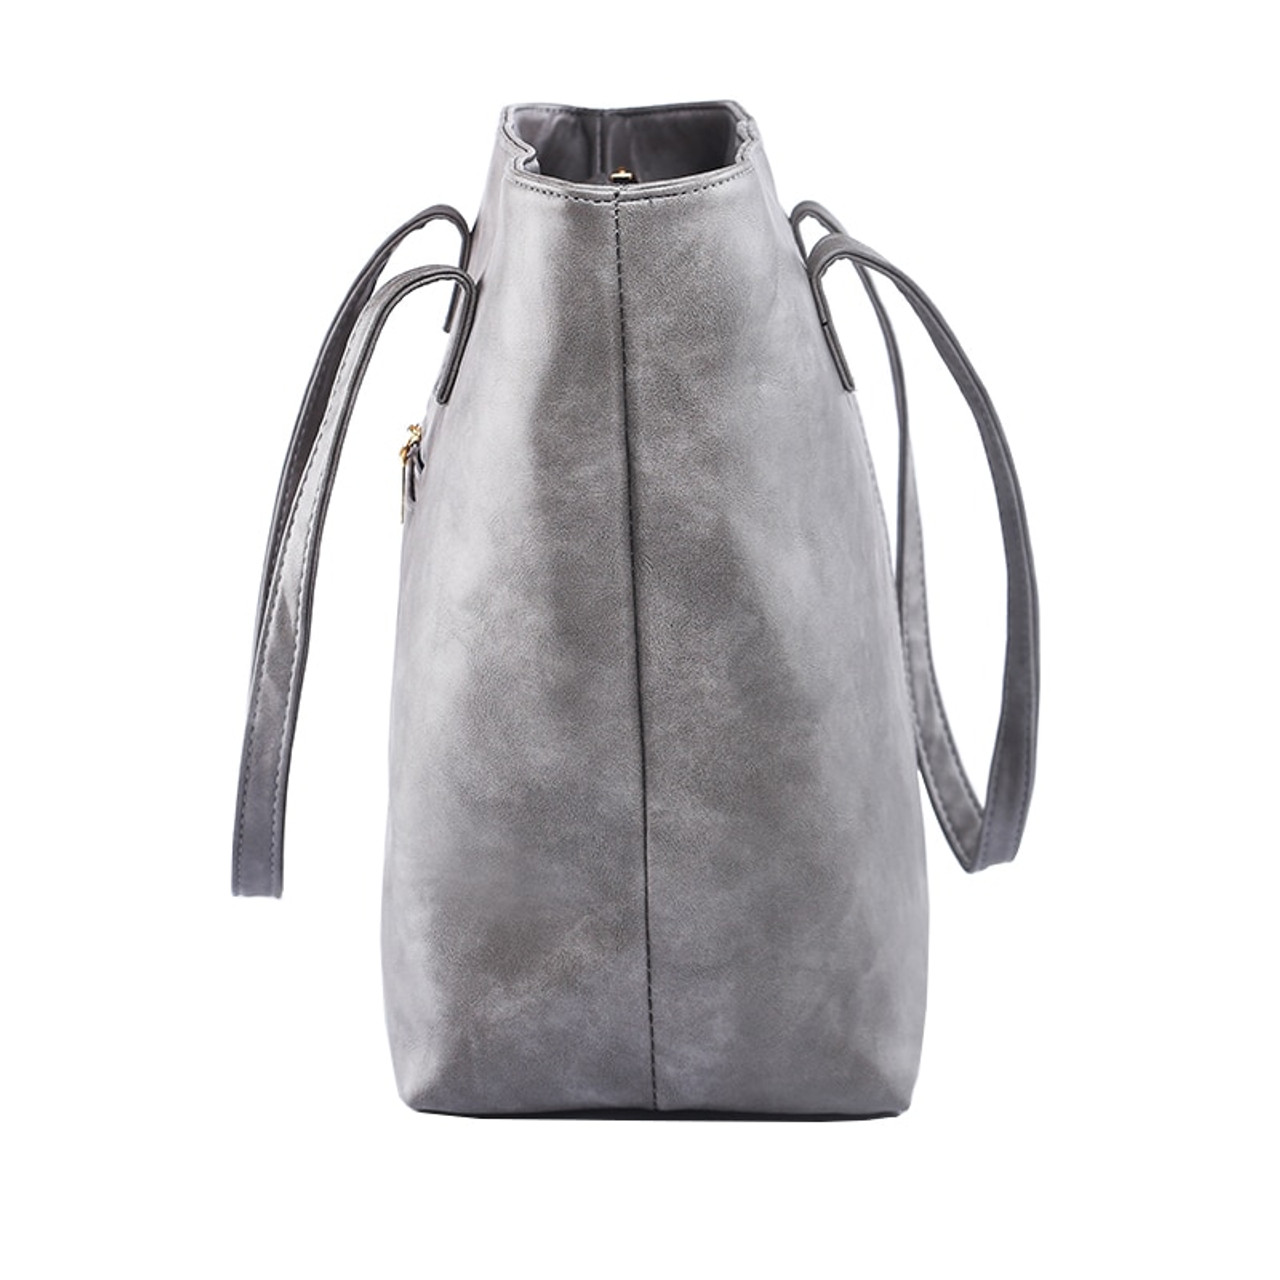 570442a9a1 ... All Match Fashion Leather Handbag Simple Style Shoulder Bags for Women  Gray  Black Large Capacity ...